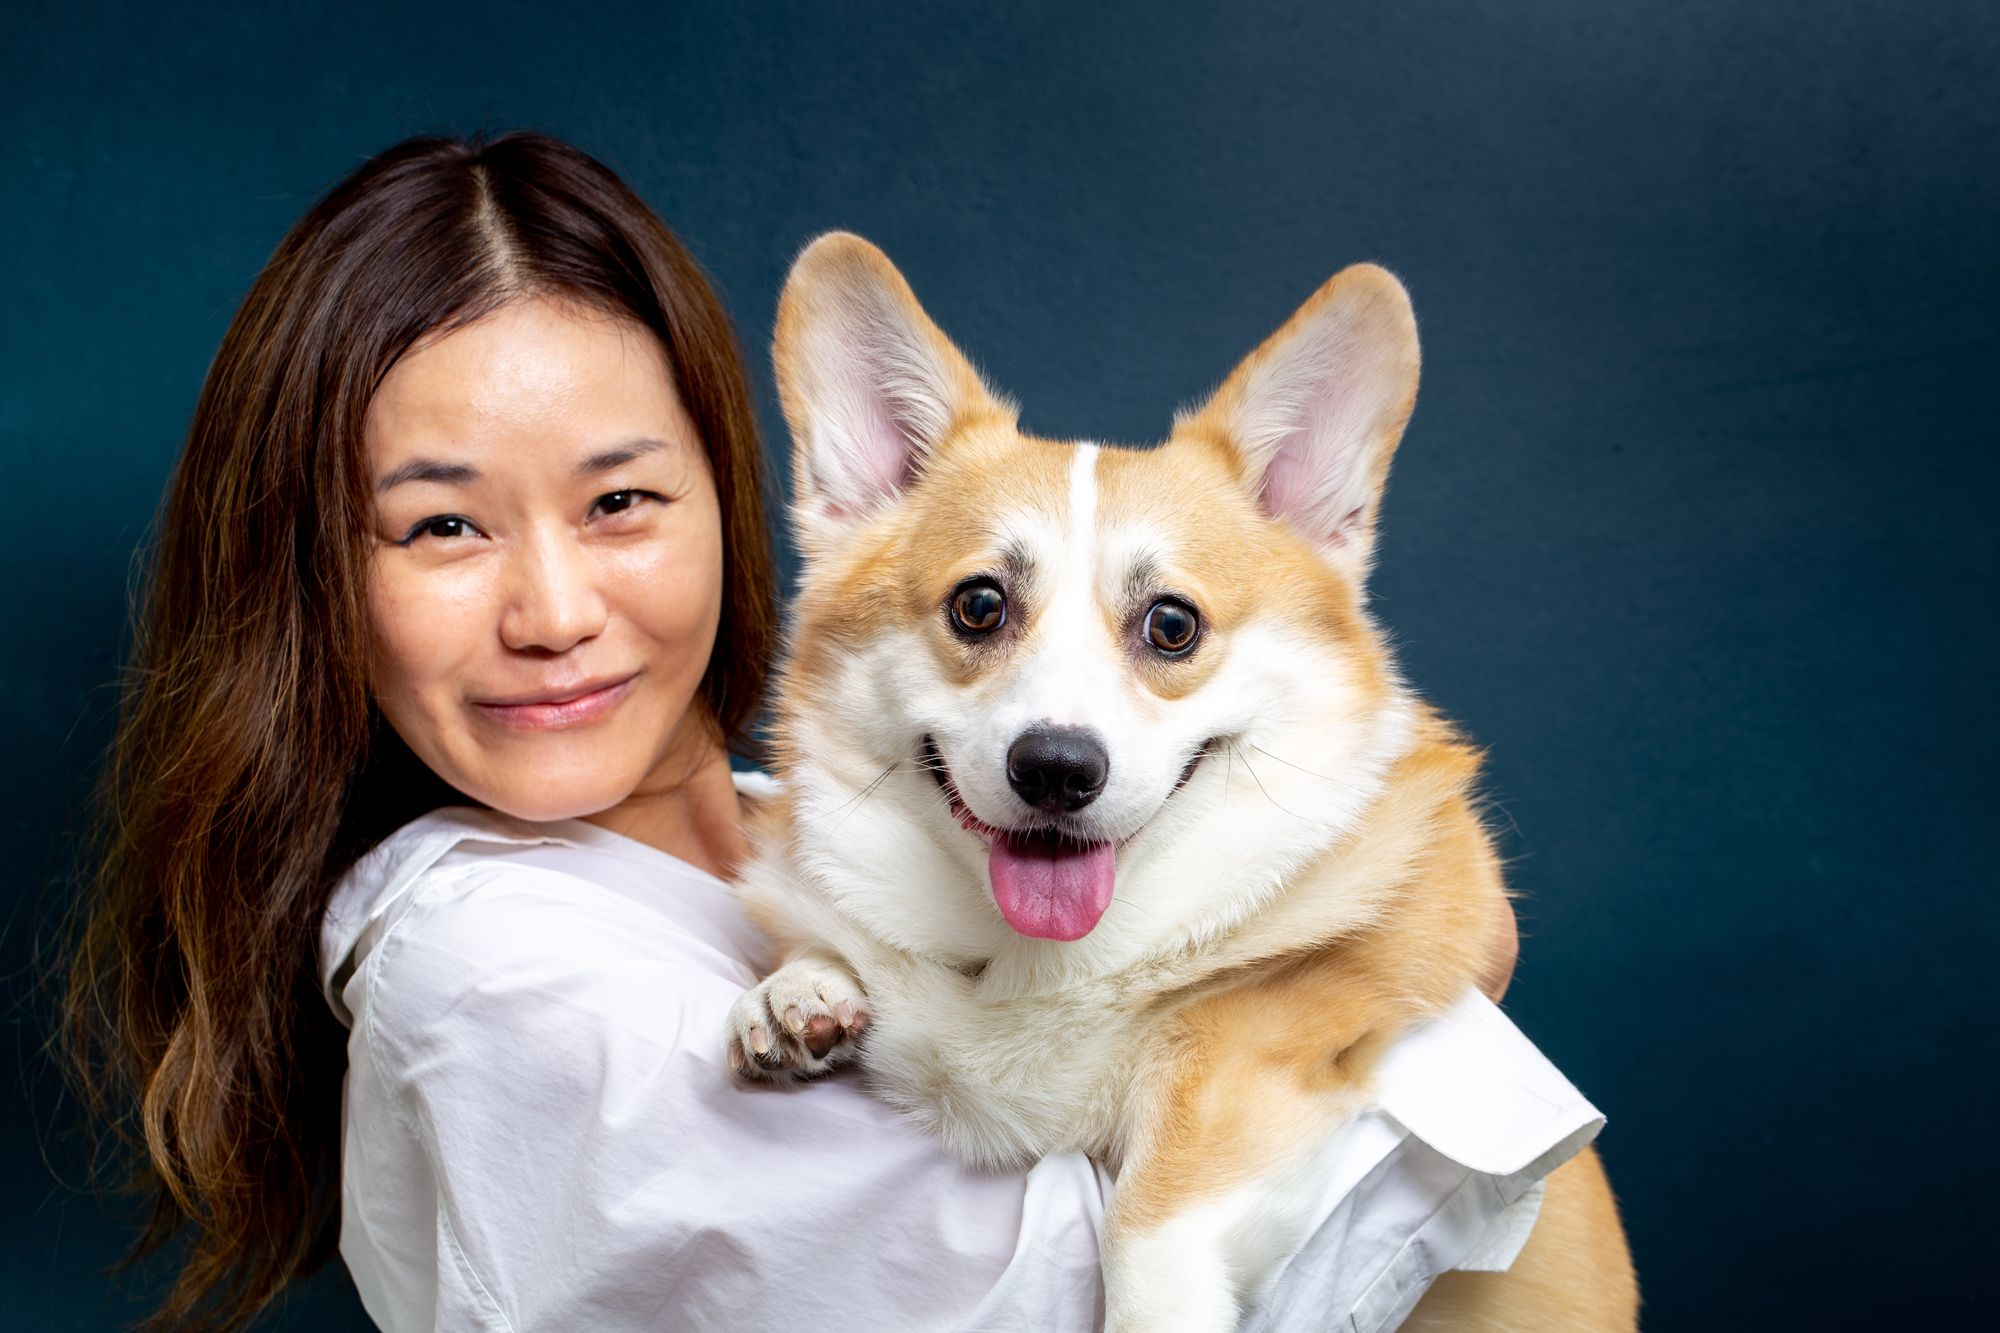 Pet Insurance: Dog In Veterinarian's Arms